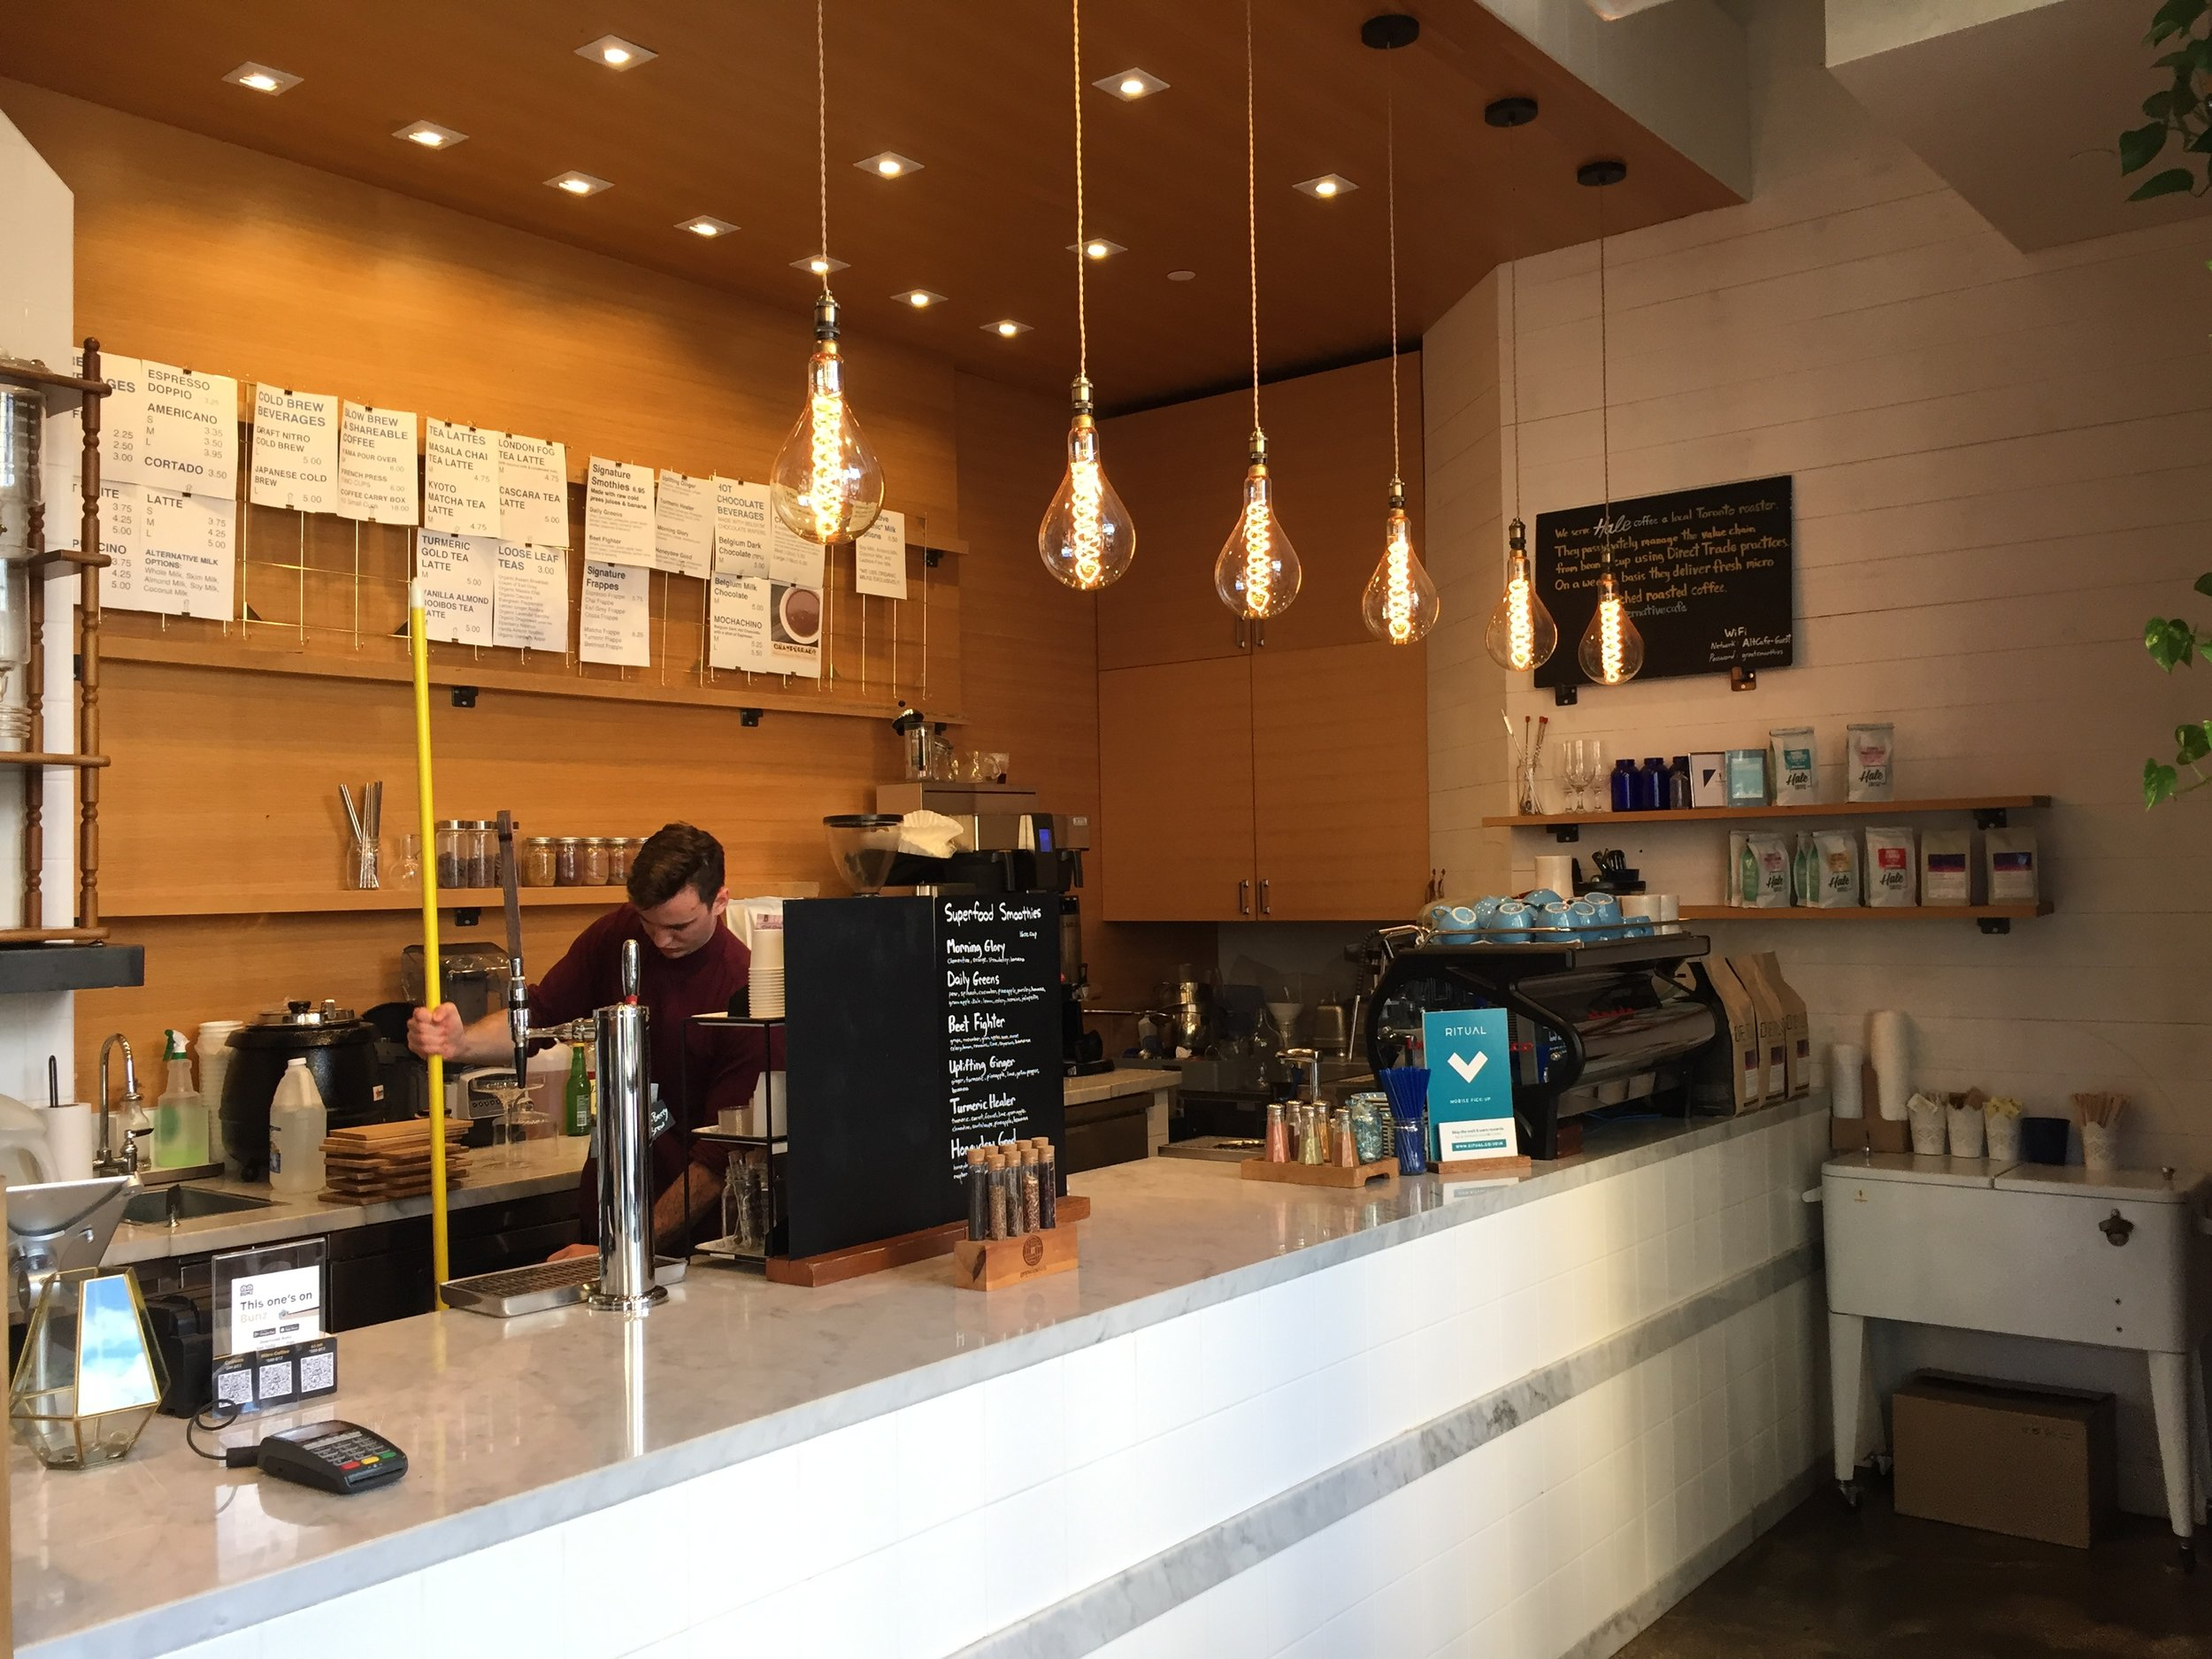 Picture of the front counter at the alternative cafe